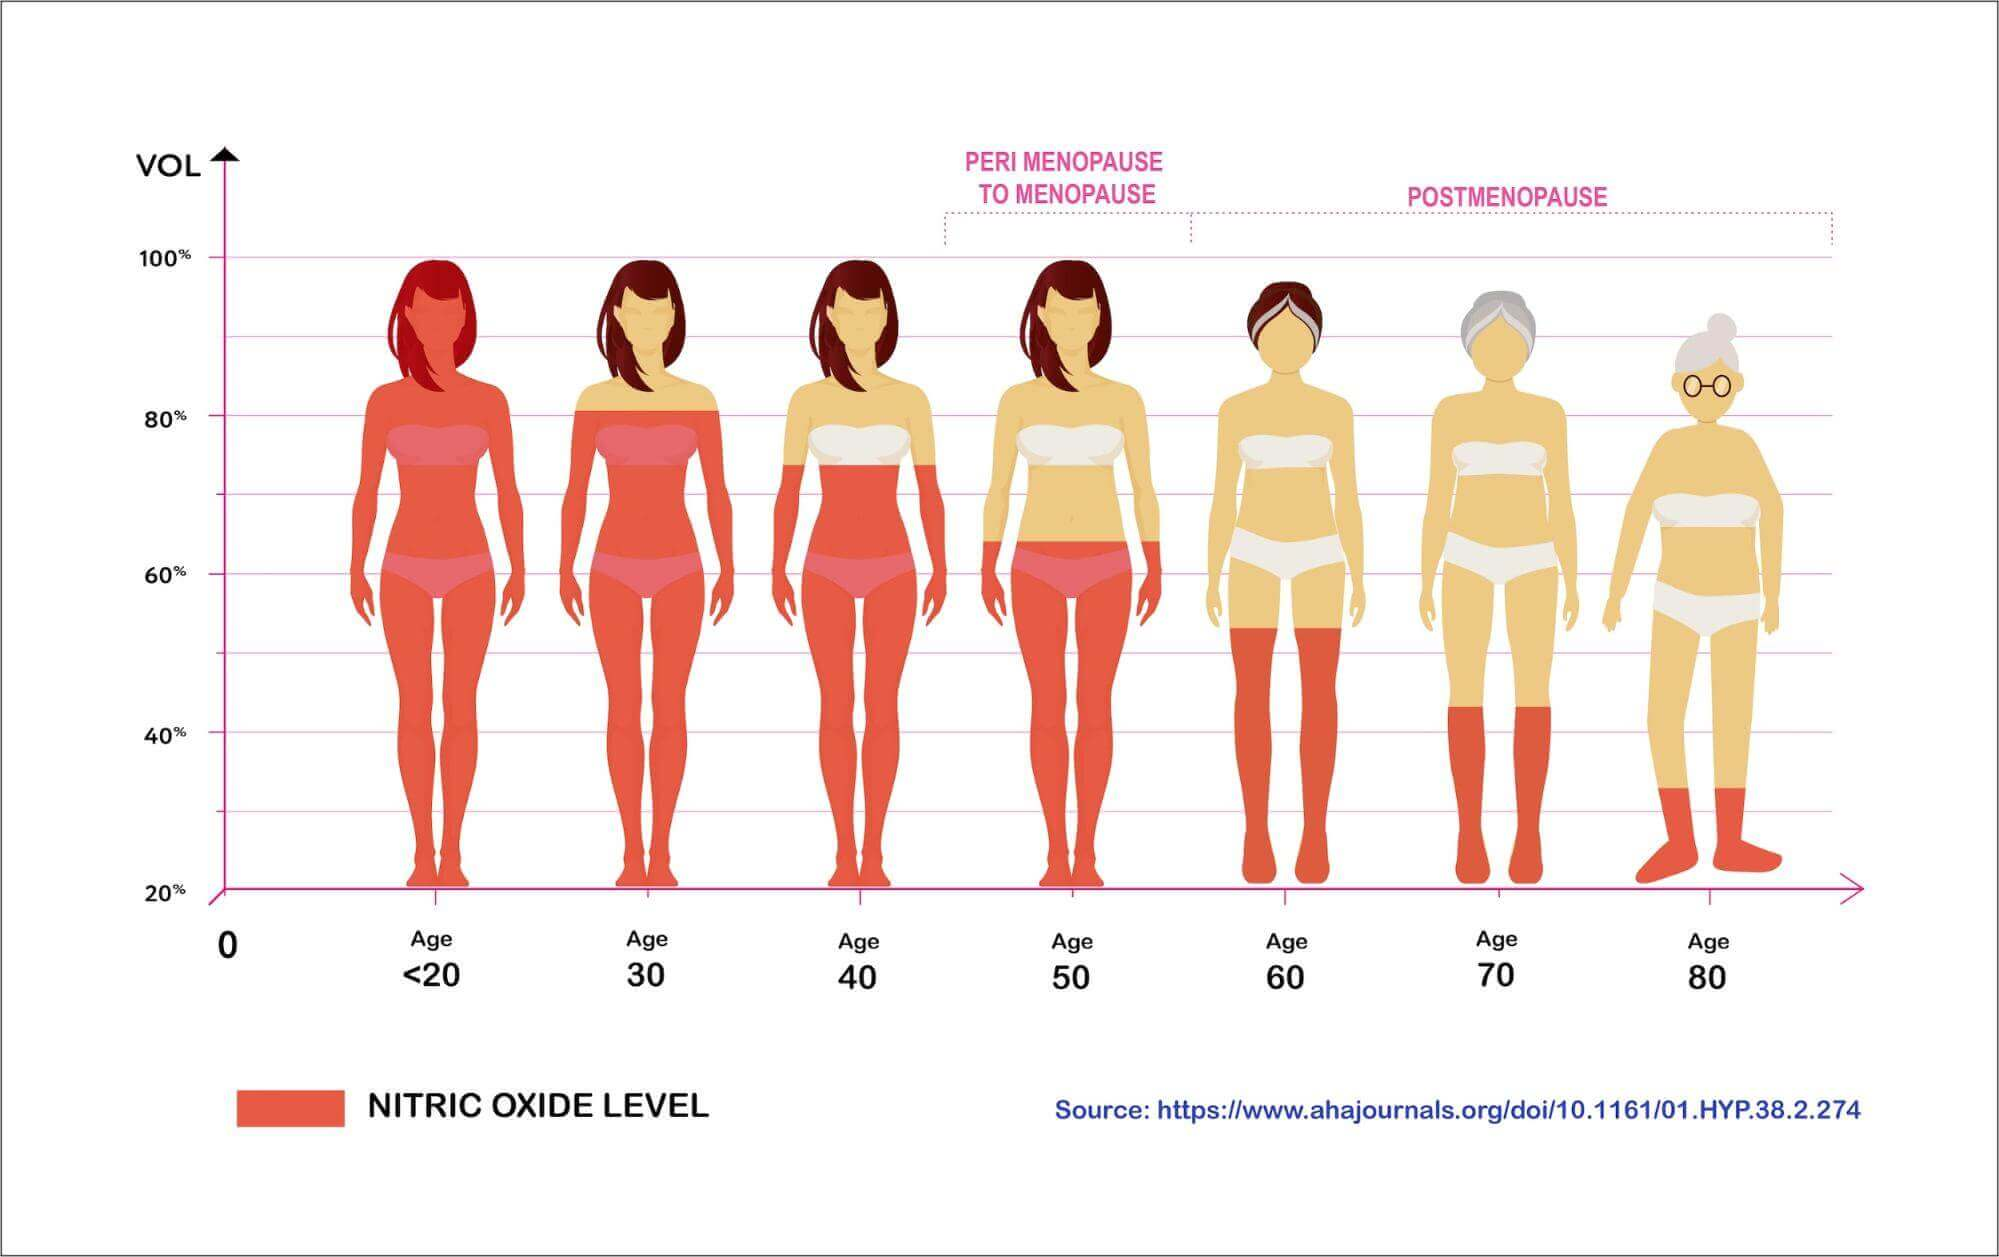 graph image showing women losing sexual pleasure by age